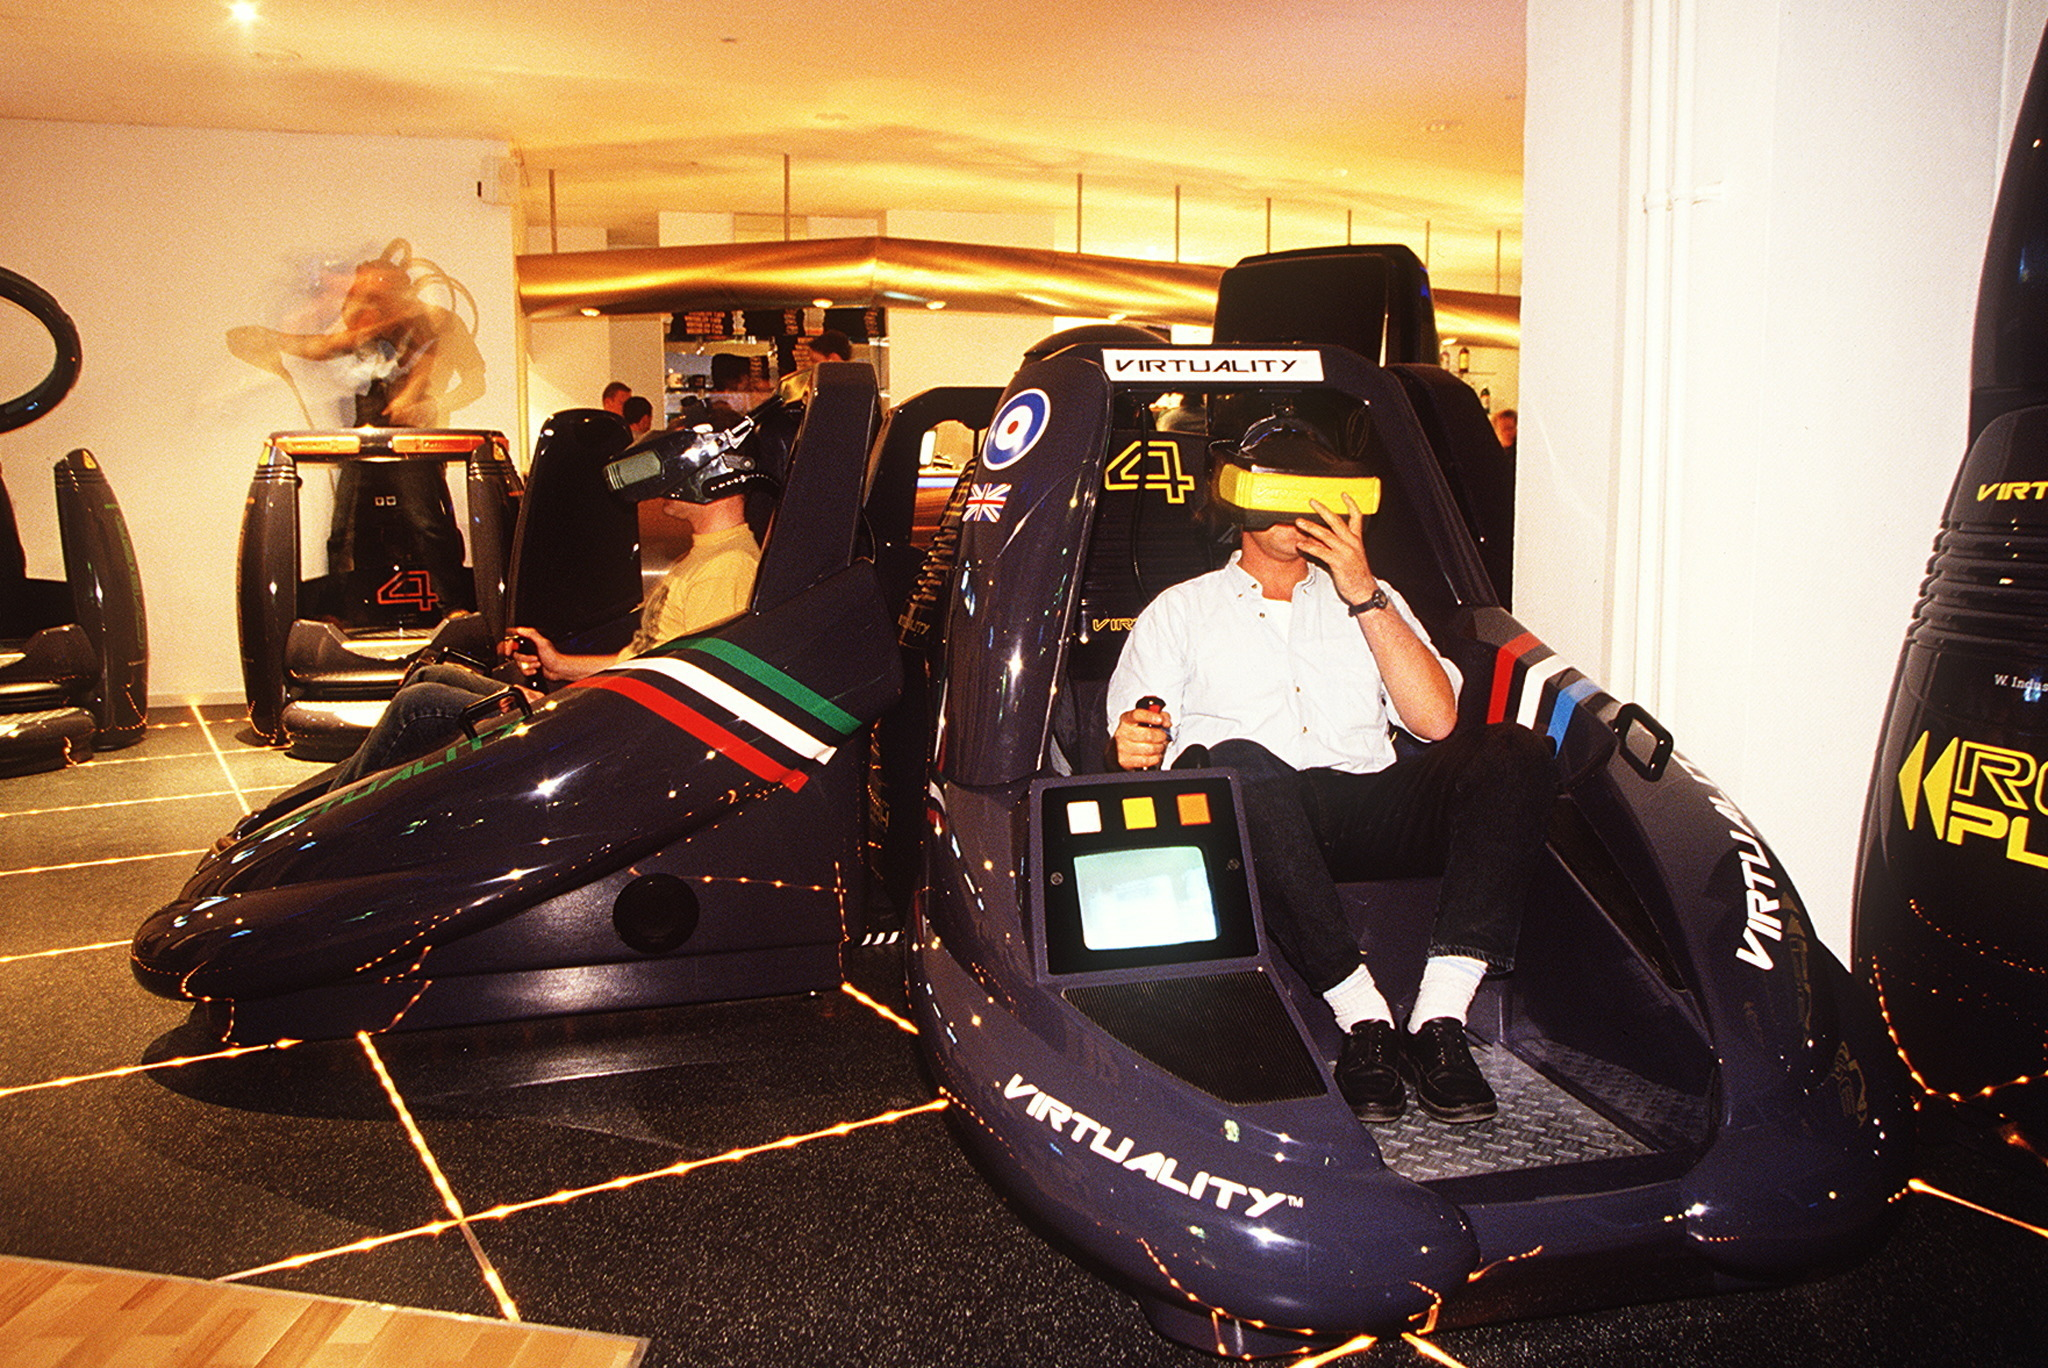 (GERMANY OUT) junger Mann beim Spiel im Virtuality Cafeim Europa-Center- 1995 (Photo by Christoph Michaelis/ullstein bild via Getty Images)